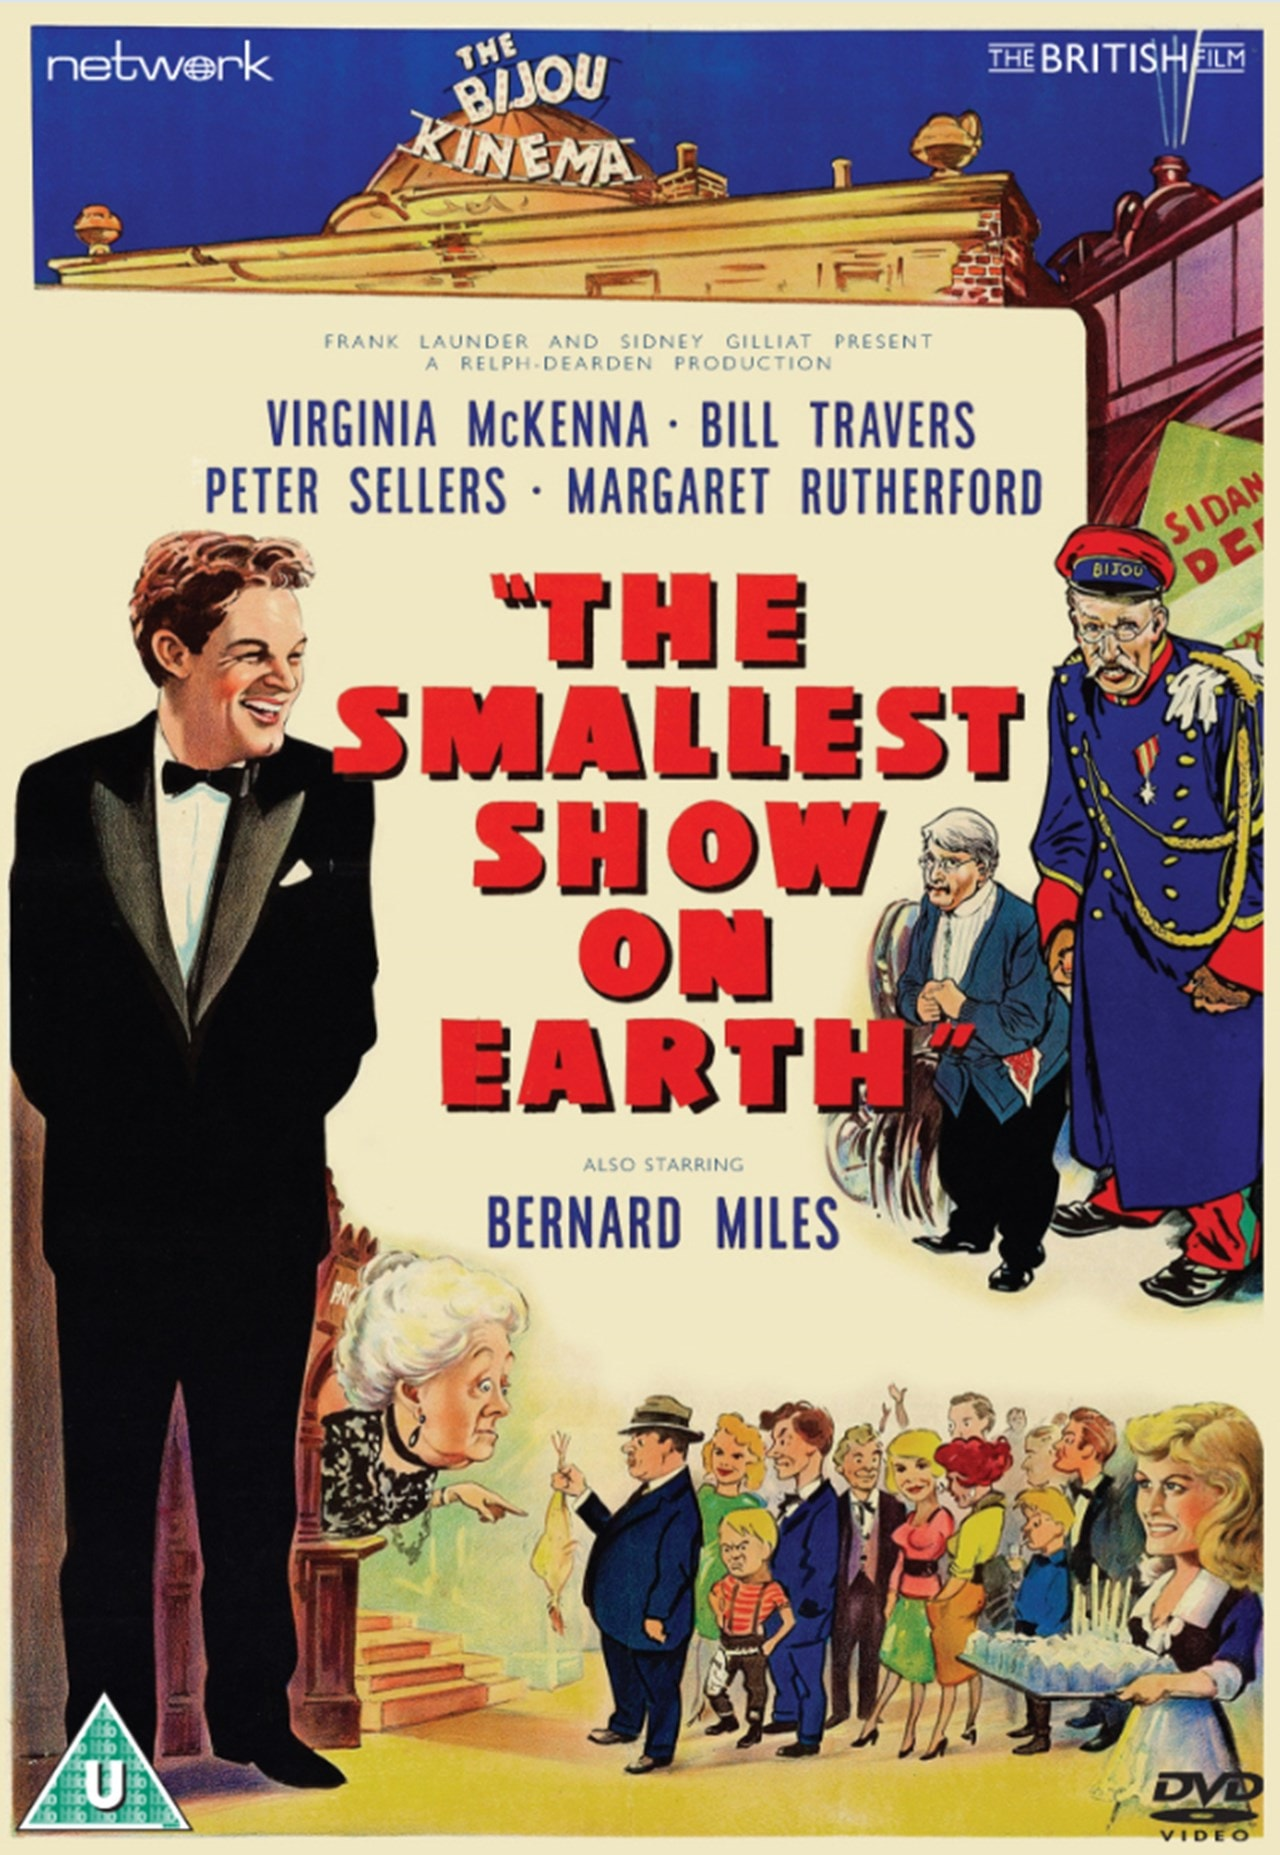 The Smallest Show On Earth - 1